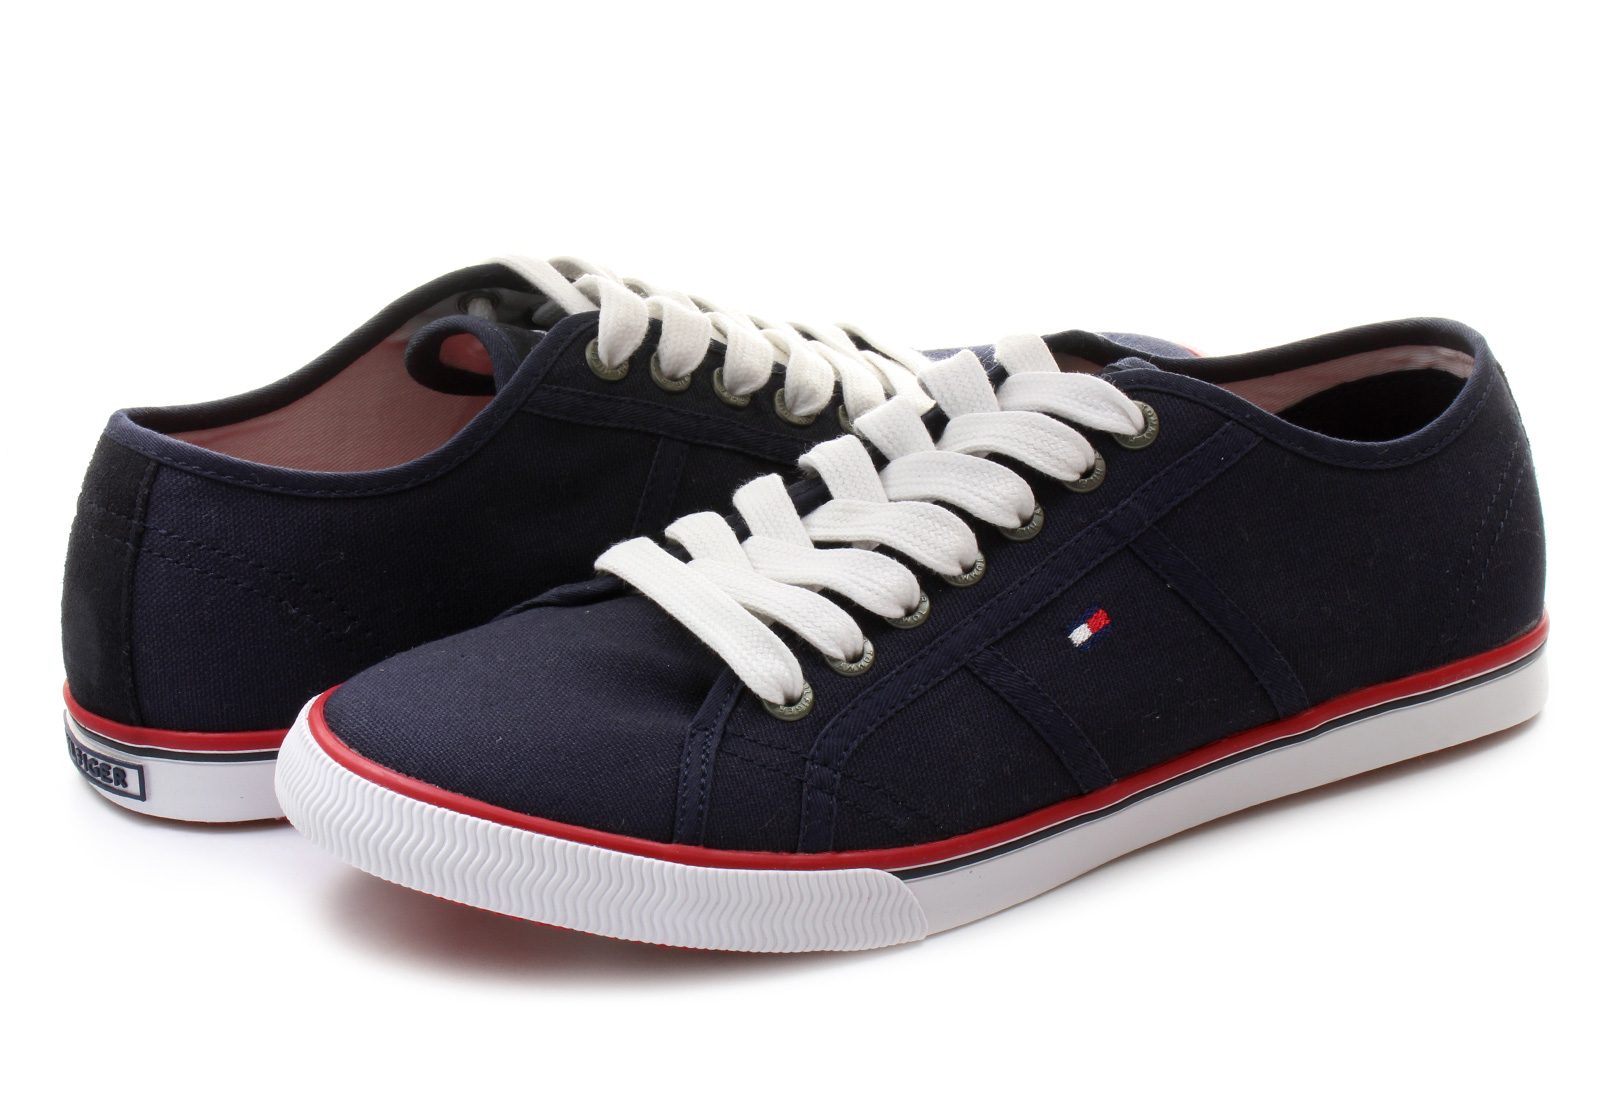 tommy hilfiger shoes vantage 2d 15s 9047 403 online shop for sneakers shoes and boots. Black Bedroom Furniture Sets. Home Design Ideas